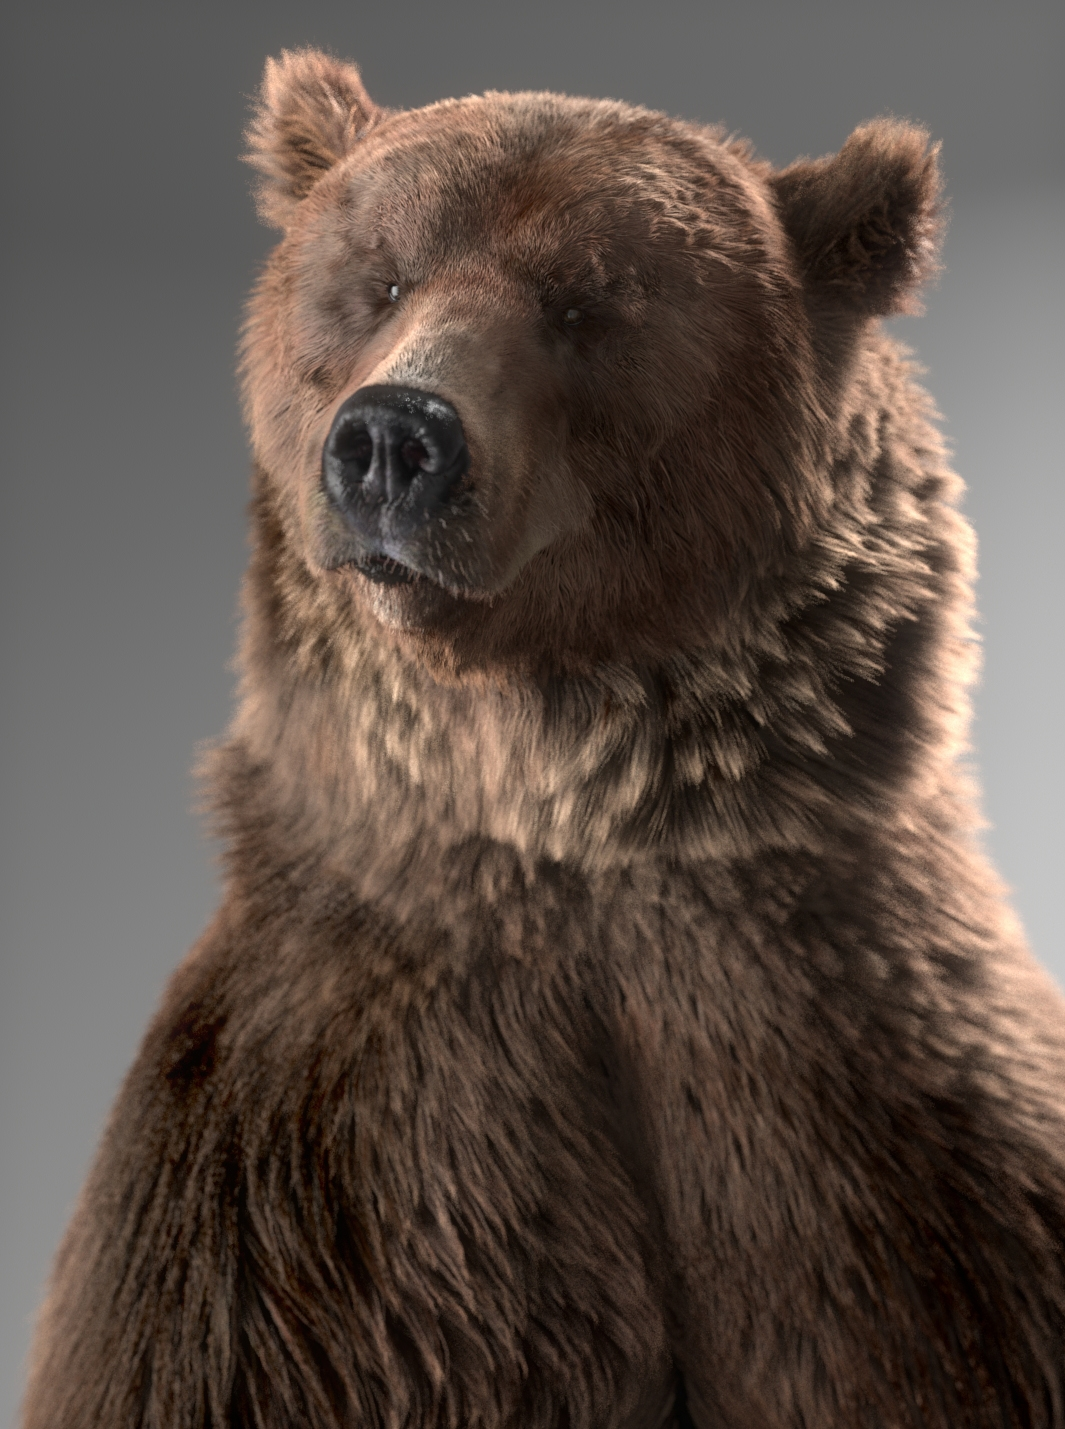 Arnold renderer public release and demo available